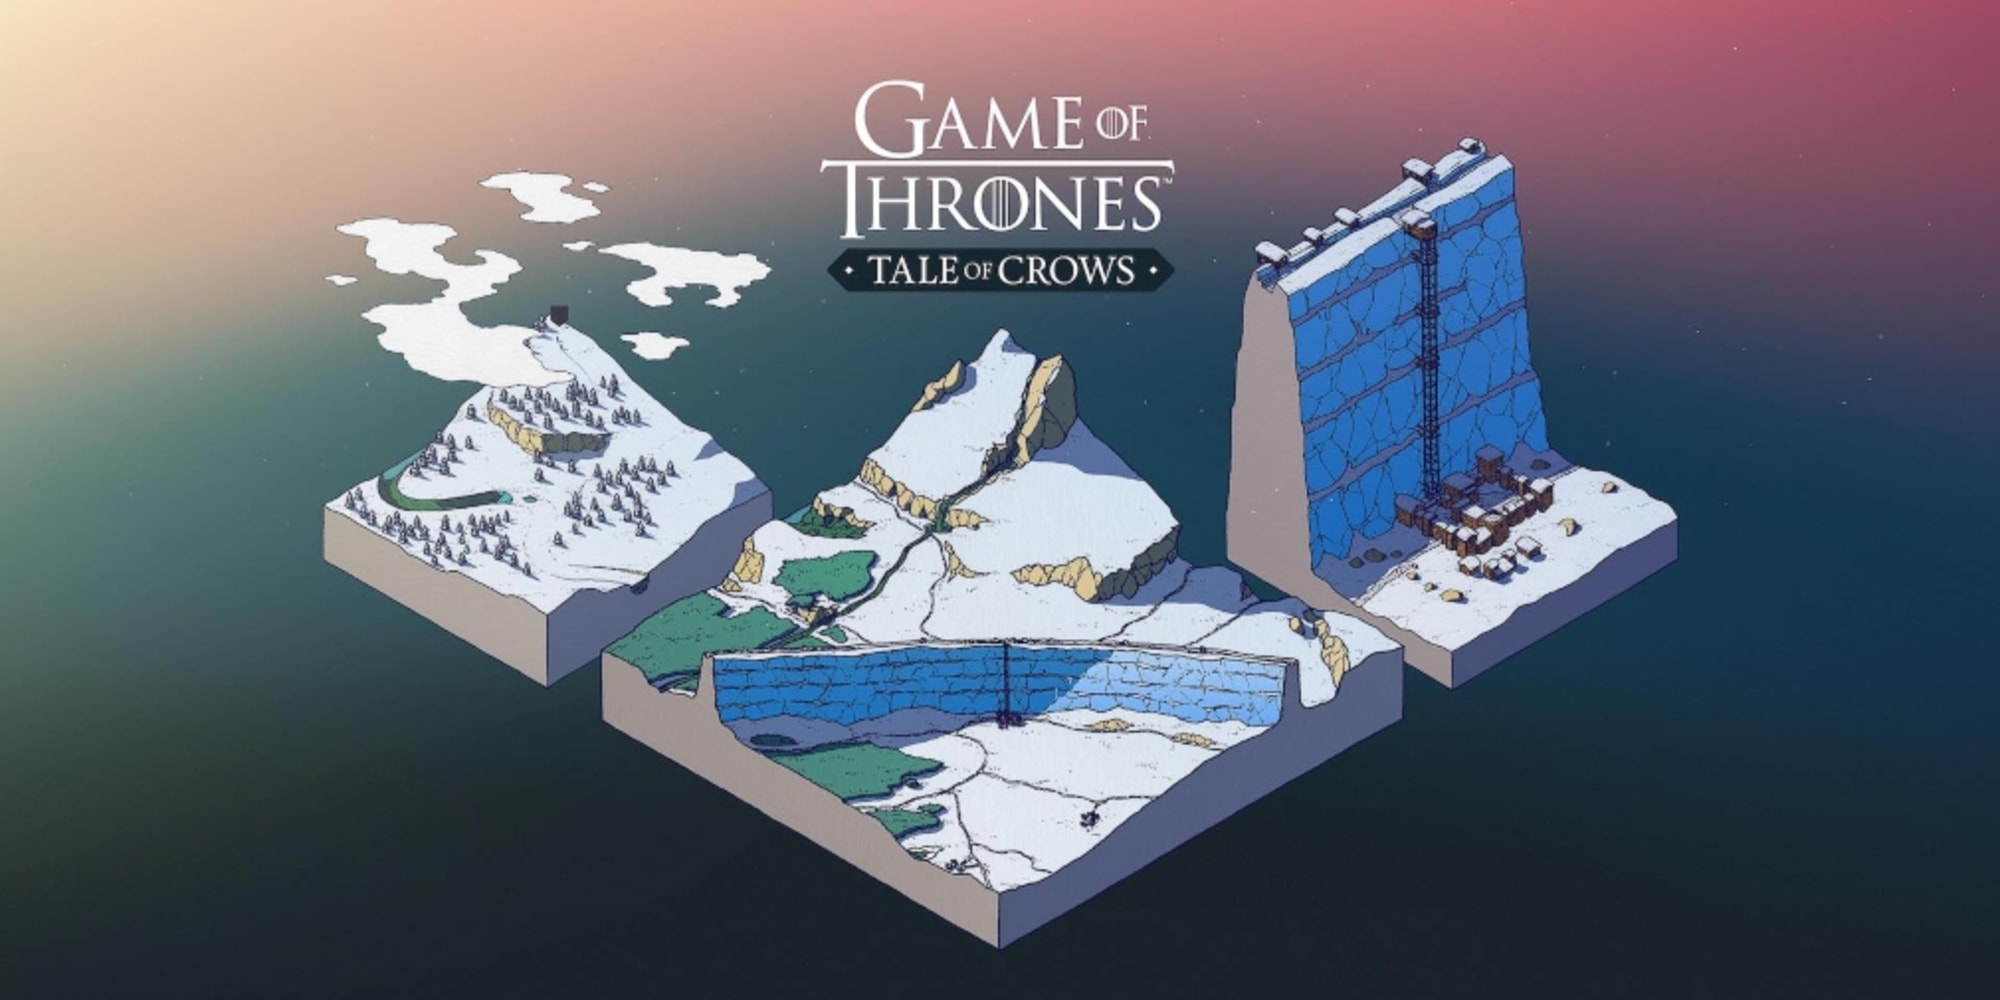 Check out Game of Thrones: Tale of Crows on Apple Arcade